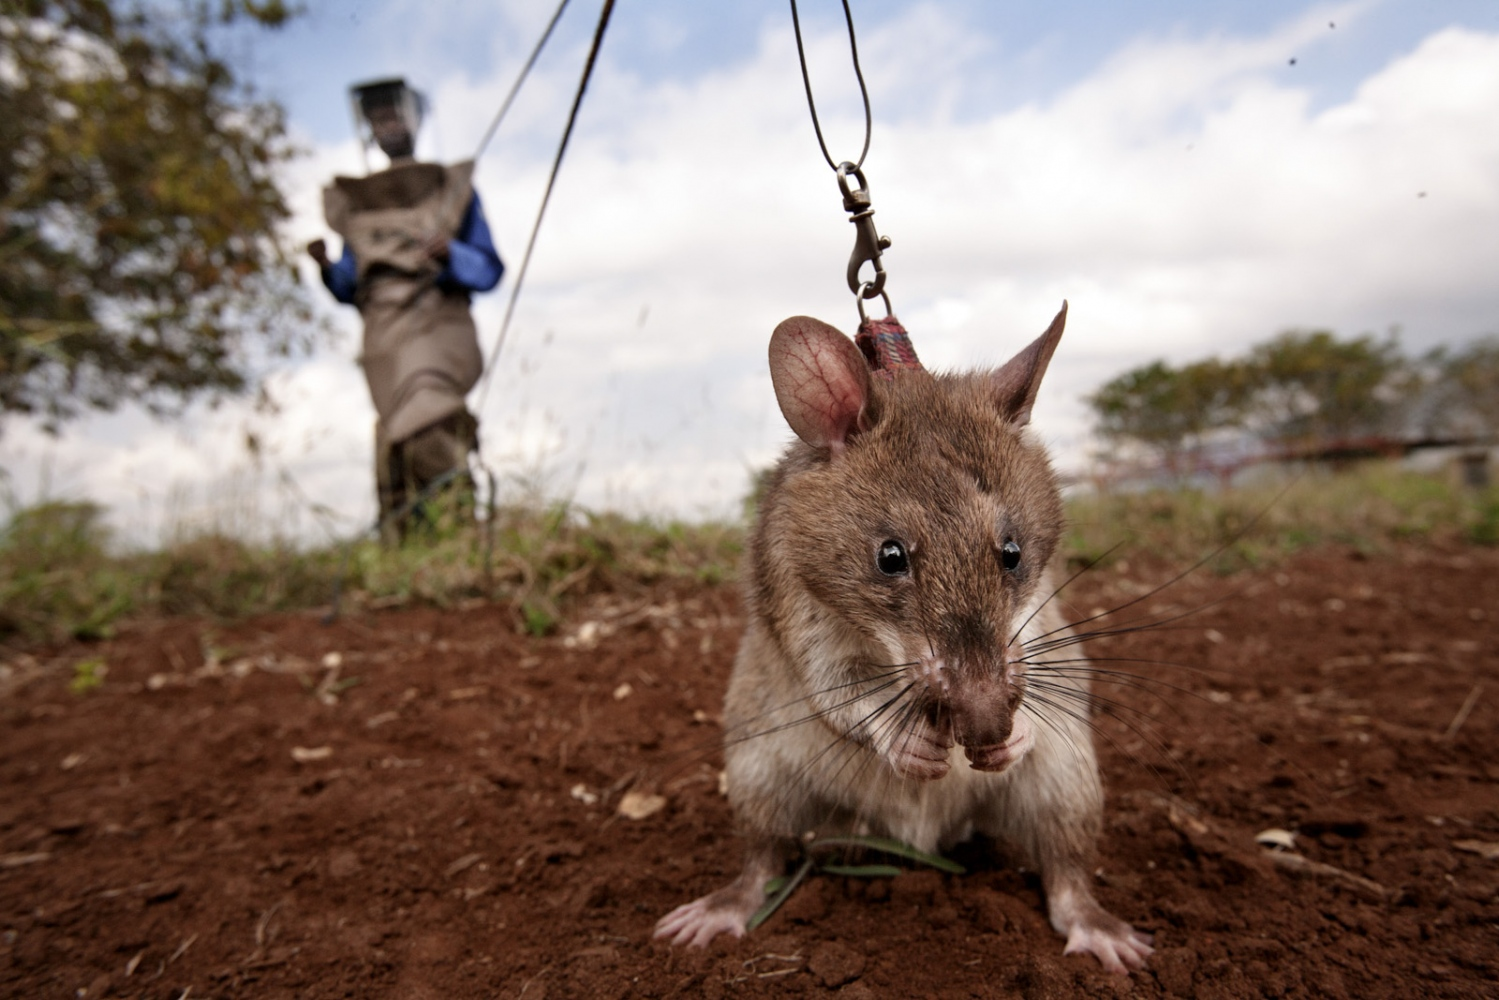 Art and Documentary Photography - Loading Hero_Rats_-_Ratas_Heroes__-_david_rengel-07.jpg